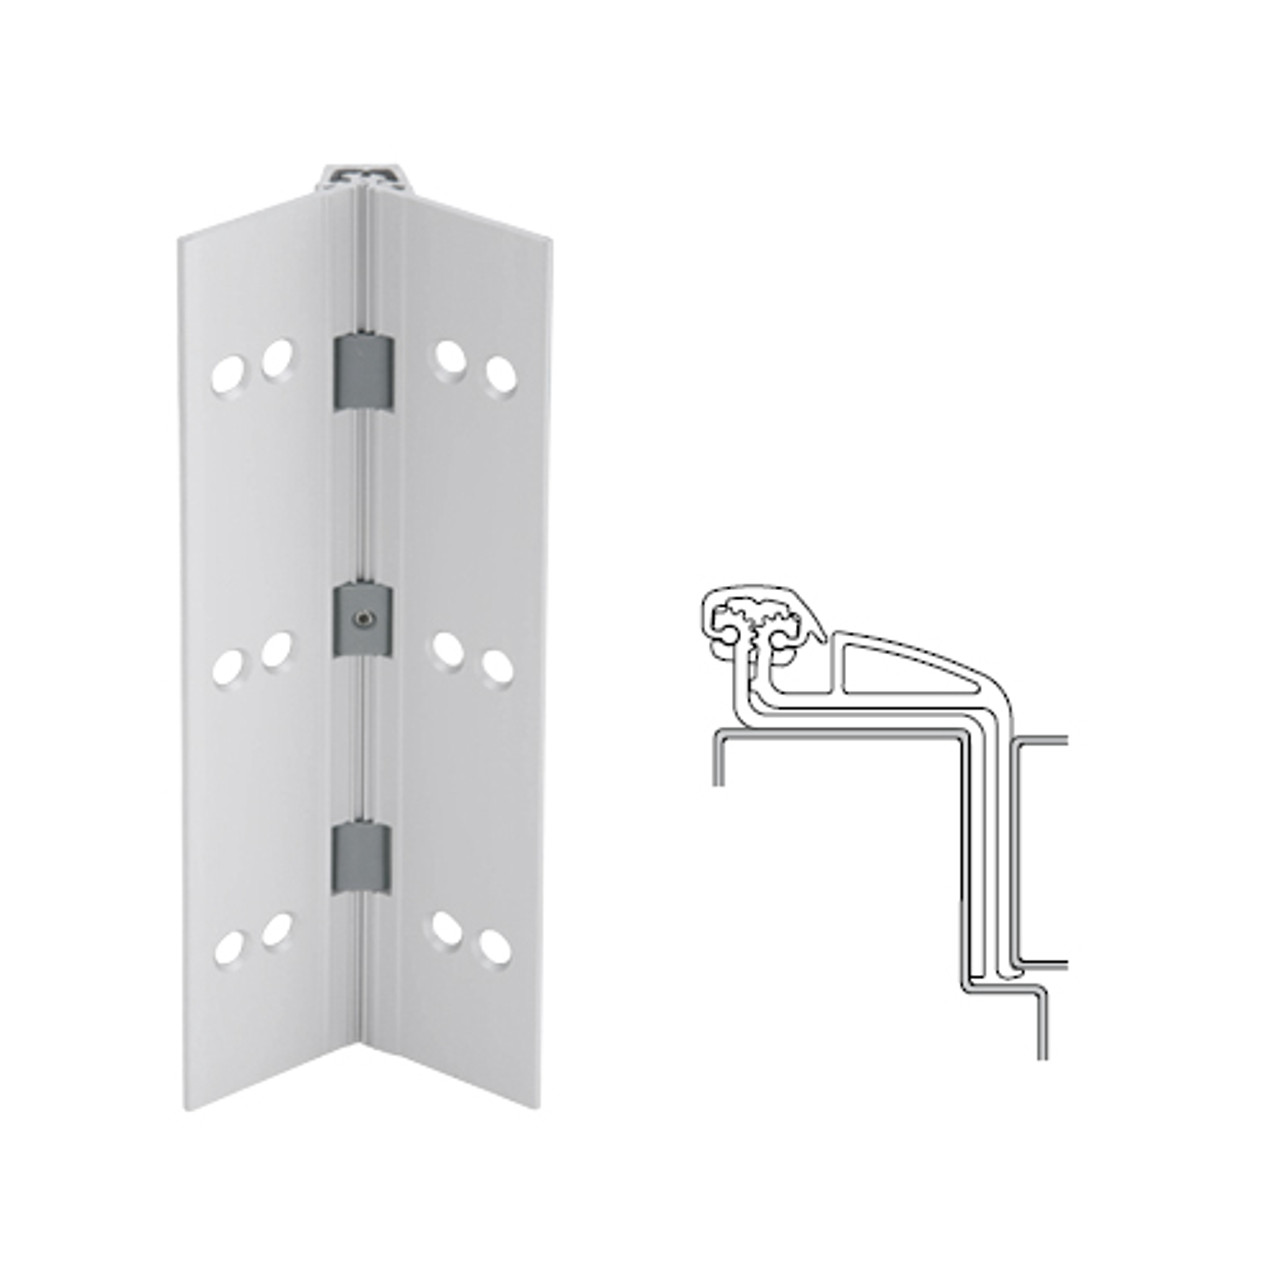 041XY-US28-83 IVES Full Mortise Continuous Geared Hinges in Satin Aluminum